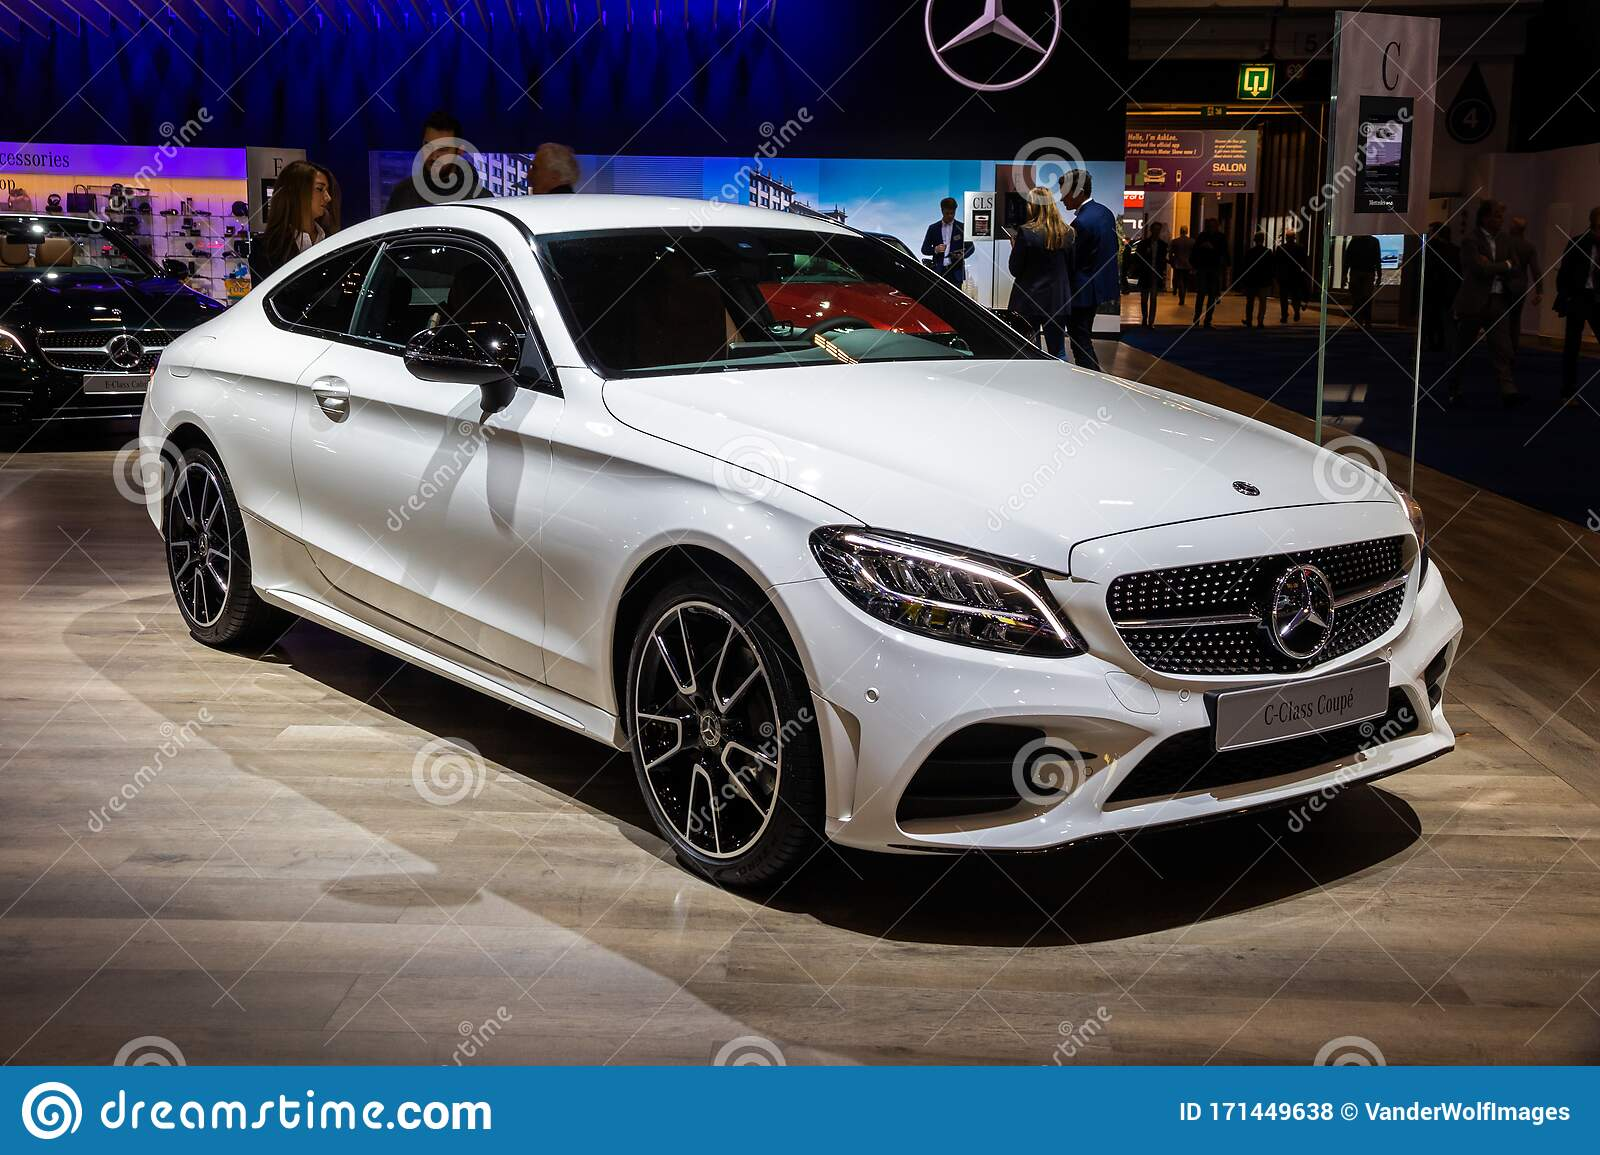 Brussels Jan 9 2020 New Mercedes Benz C Class Coupe Car Model Presented At The Brussels Autosalon 2020 Motor Show Editorial Stock Photo Image Of 2020 Autoshow 171449638